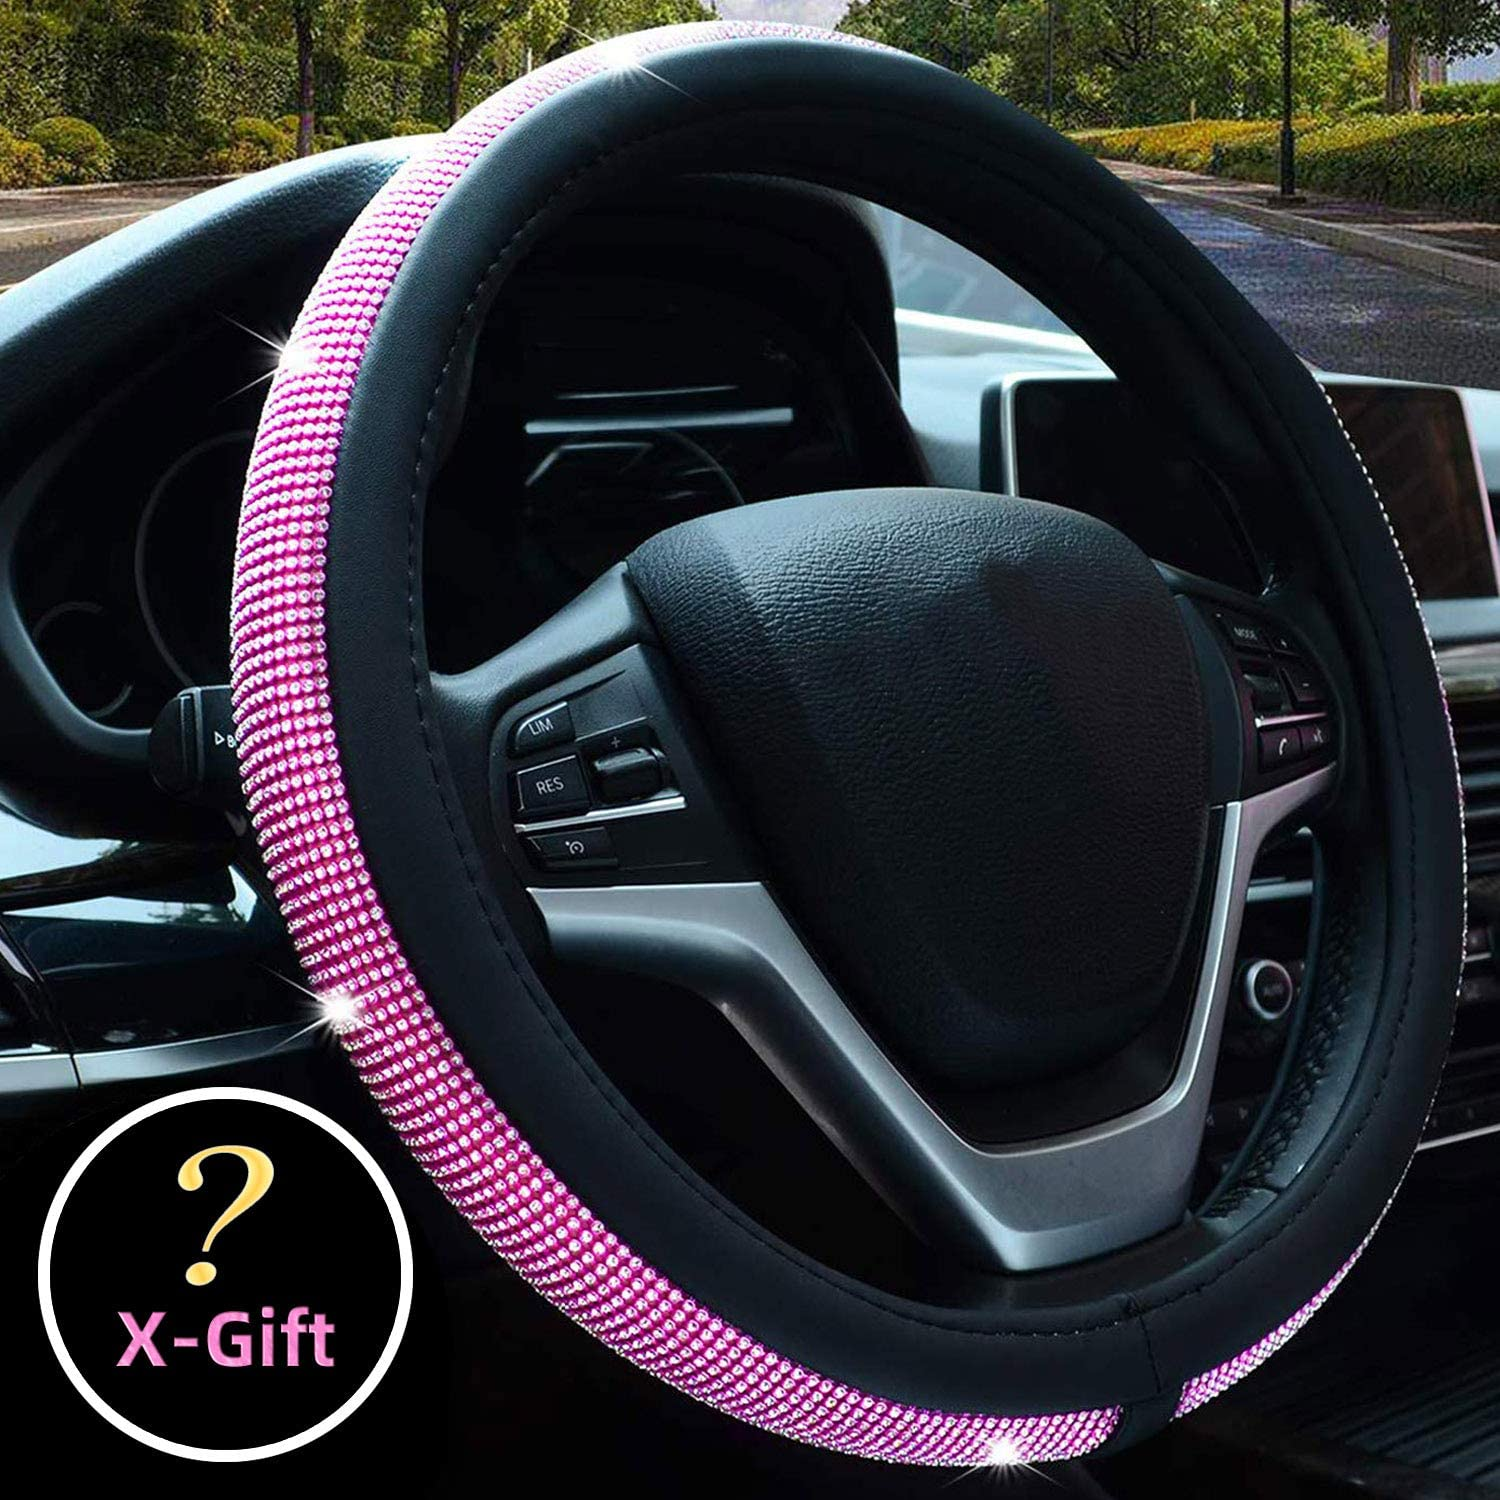 Valleycomfy Steering Wheel Cover with Microfiber Leather for Car Truck SUV 15 inch Style-Pink